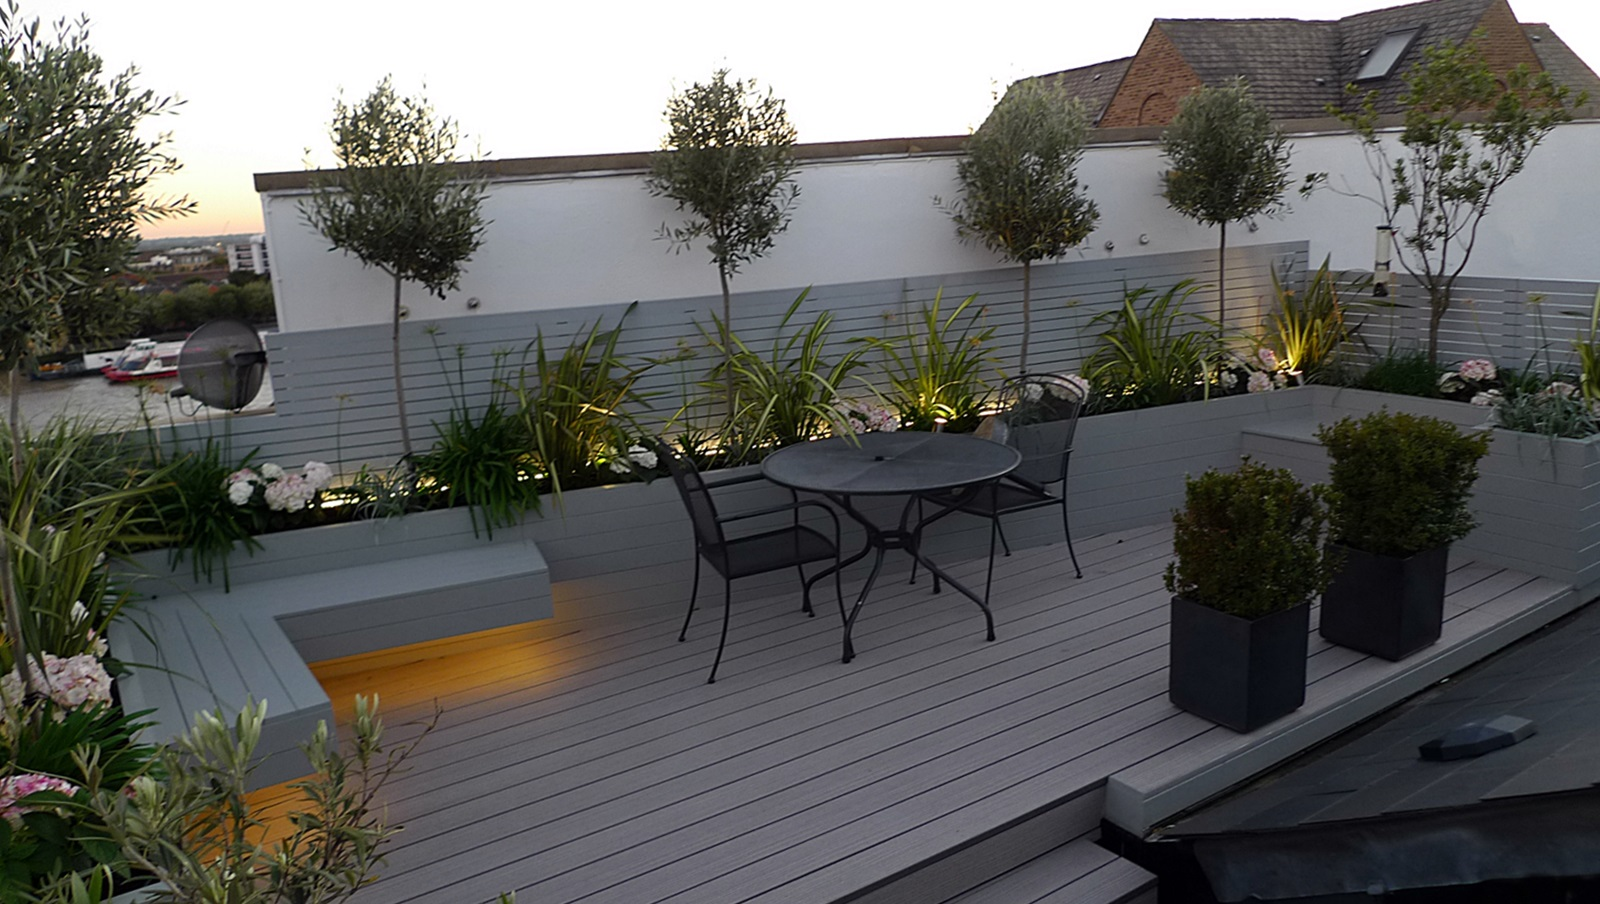 Roof Terrace Modern Garden Design - London Garden Blog